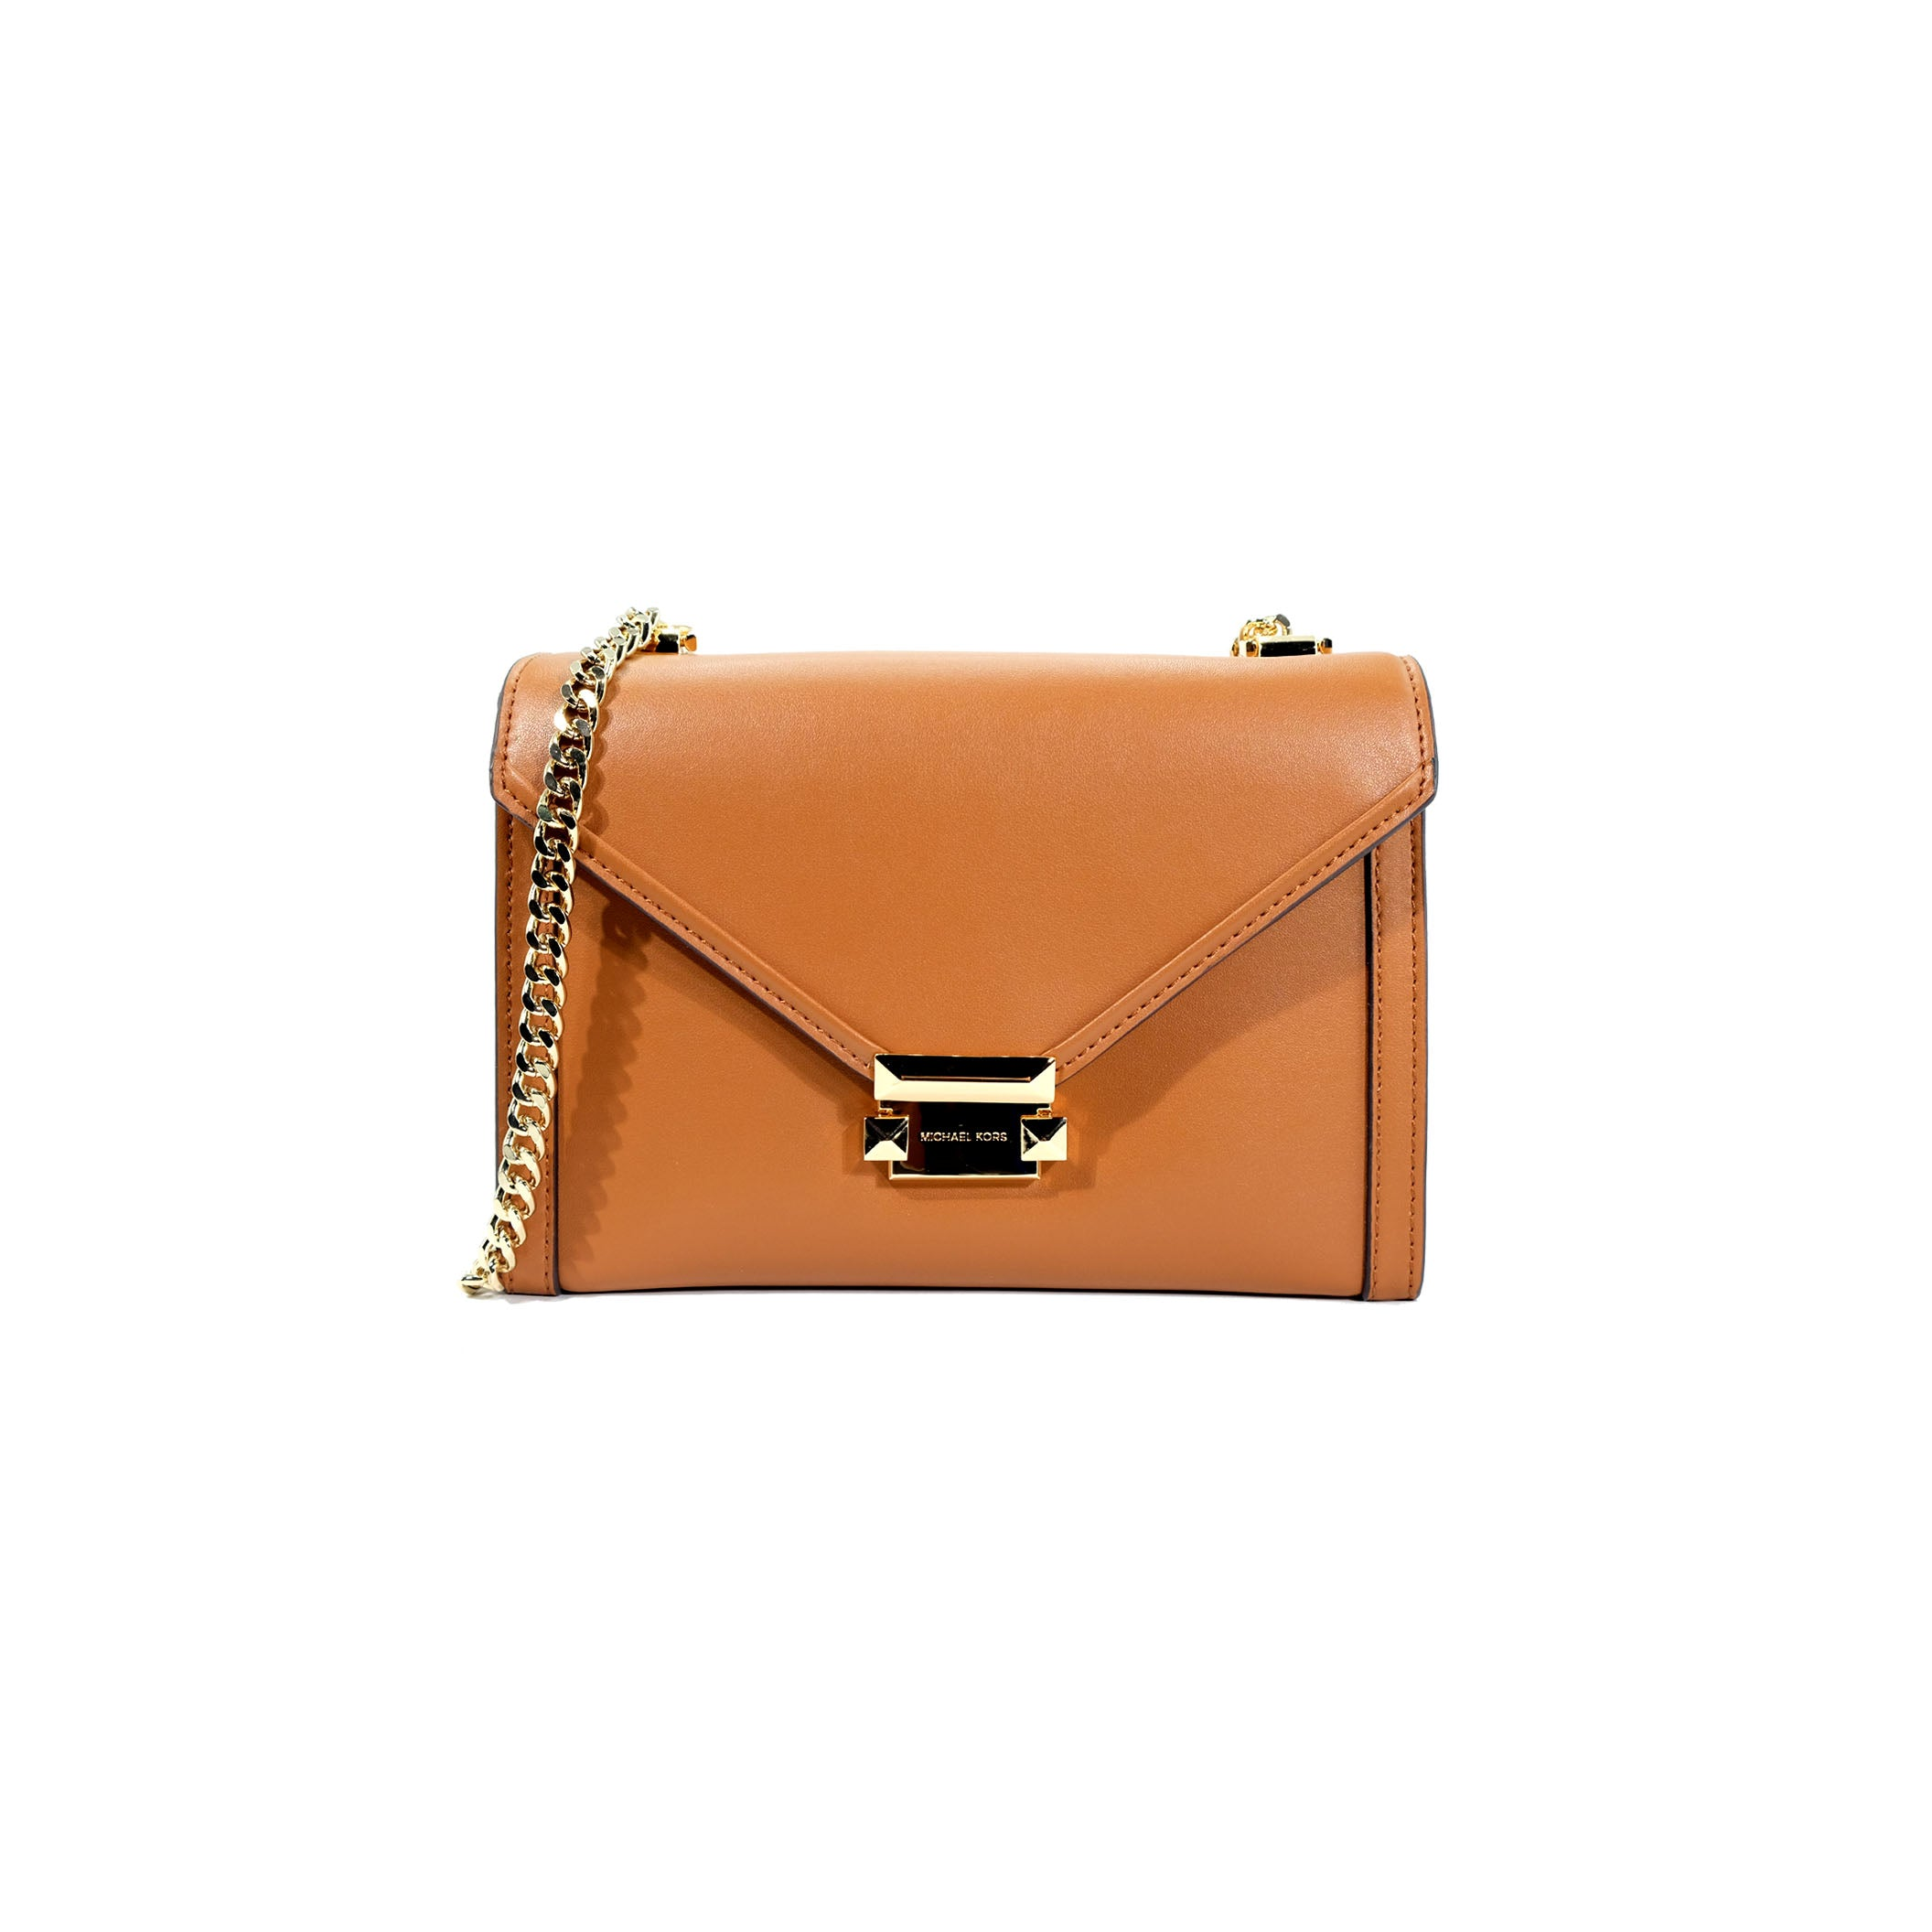 Whitney Leather Convertible Shoulder Bag